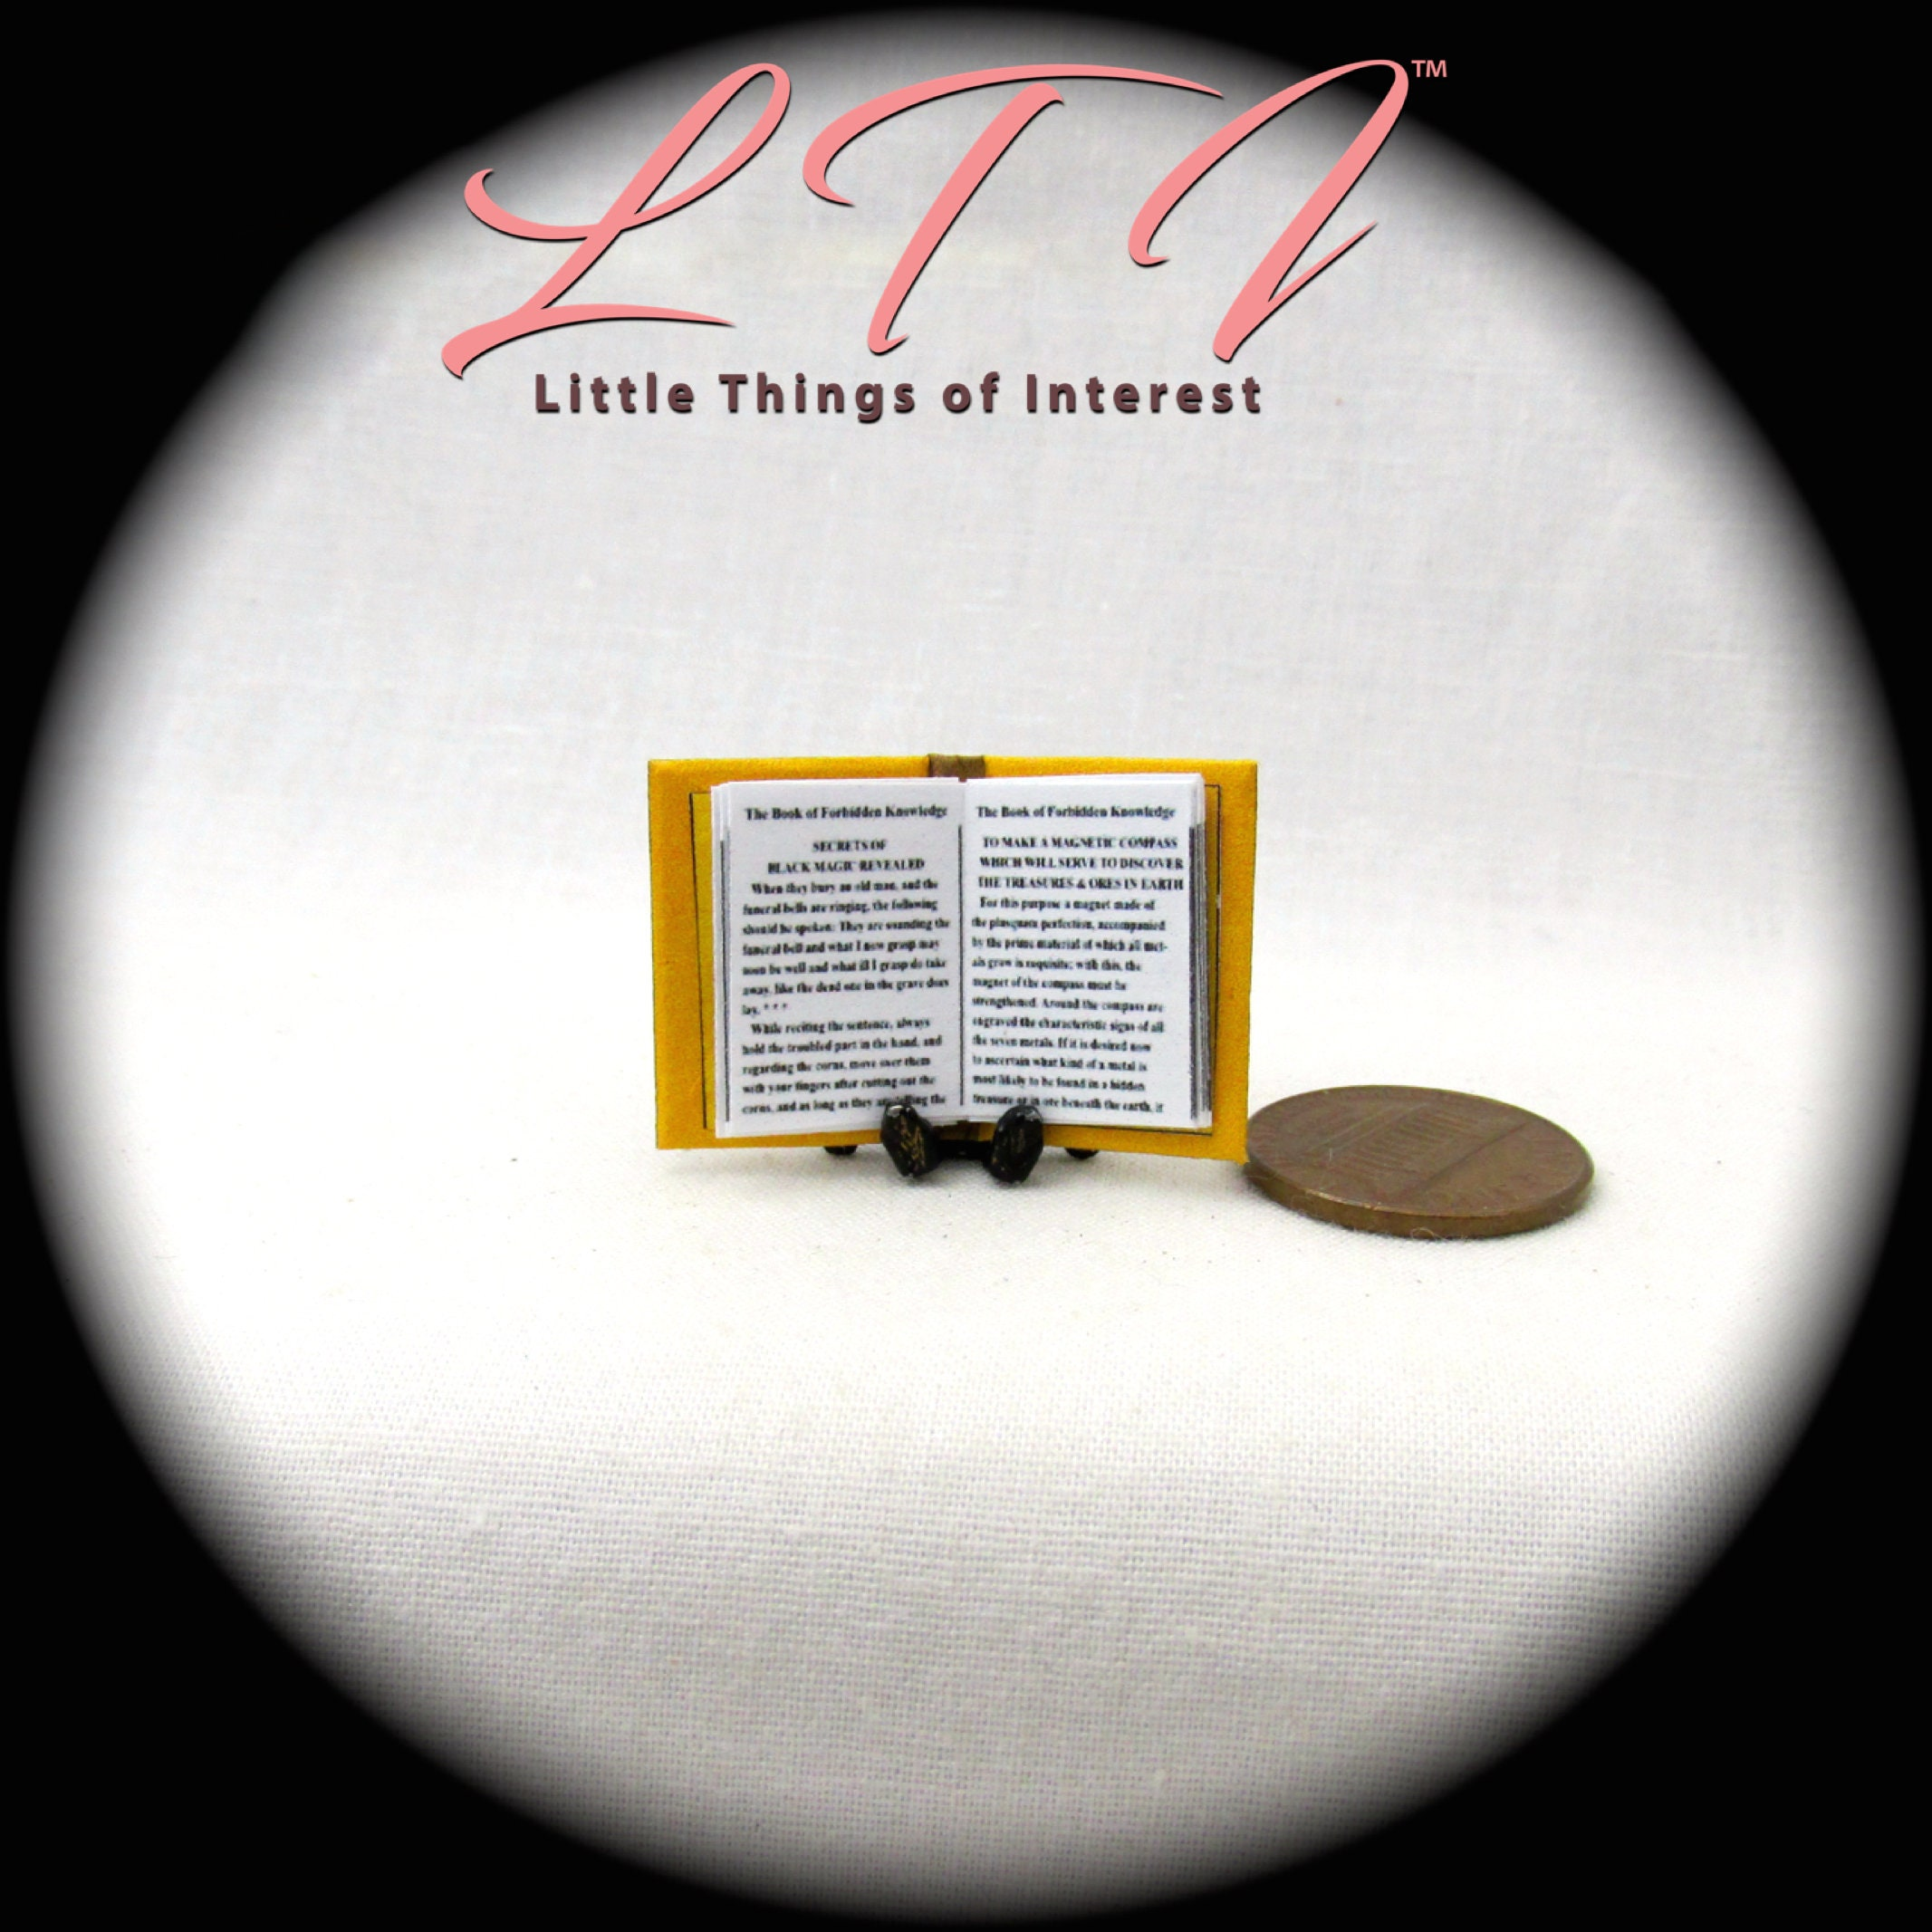 BOOK of FORBIDDEN KNOWLEDGE Miniature Book Dollhouse 1:12